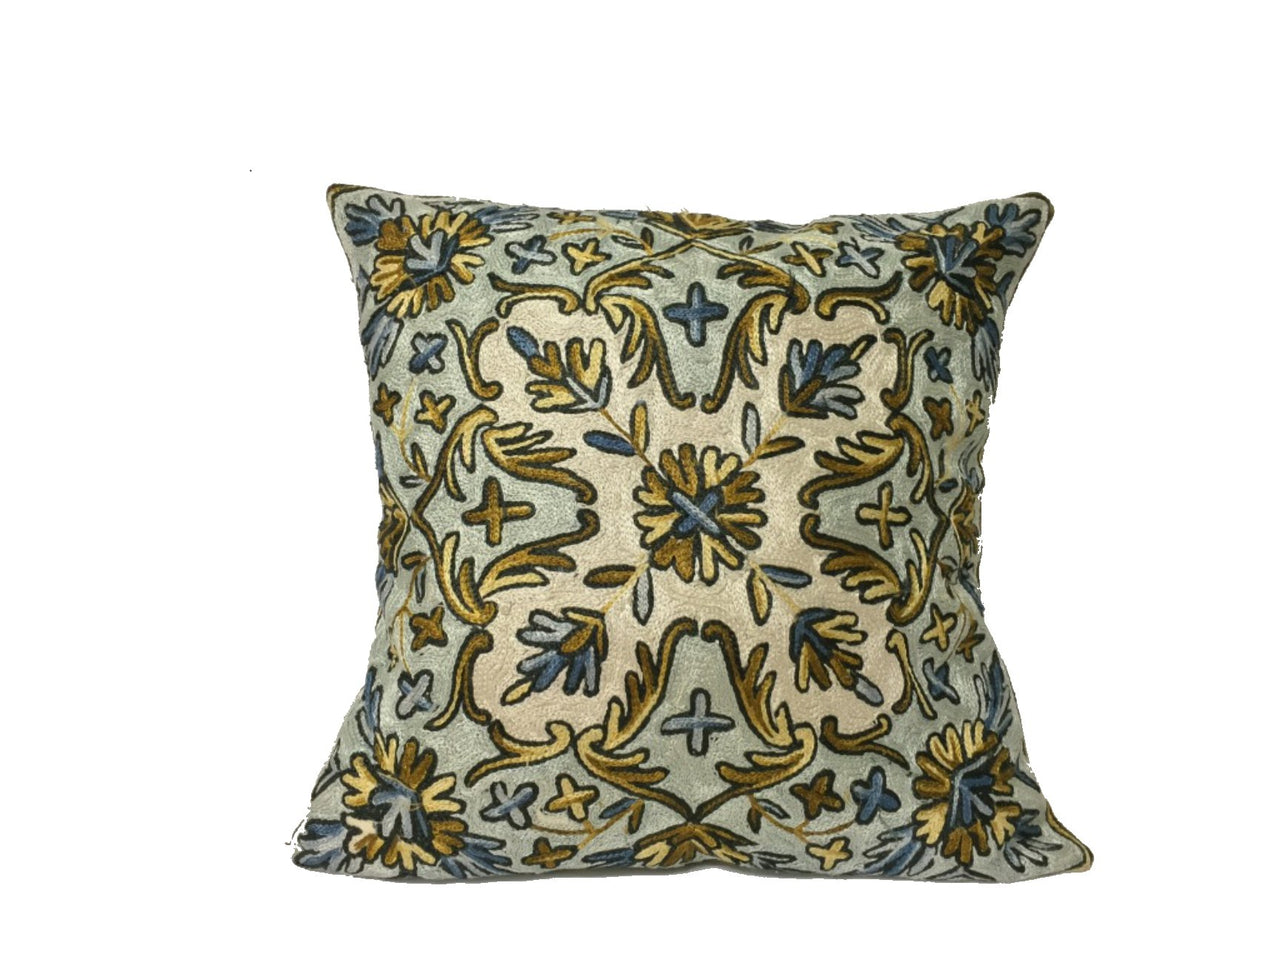 Silk Thread Embroidered Cushion Covers - Pattern G